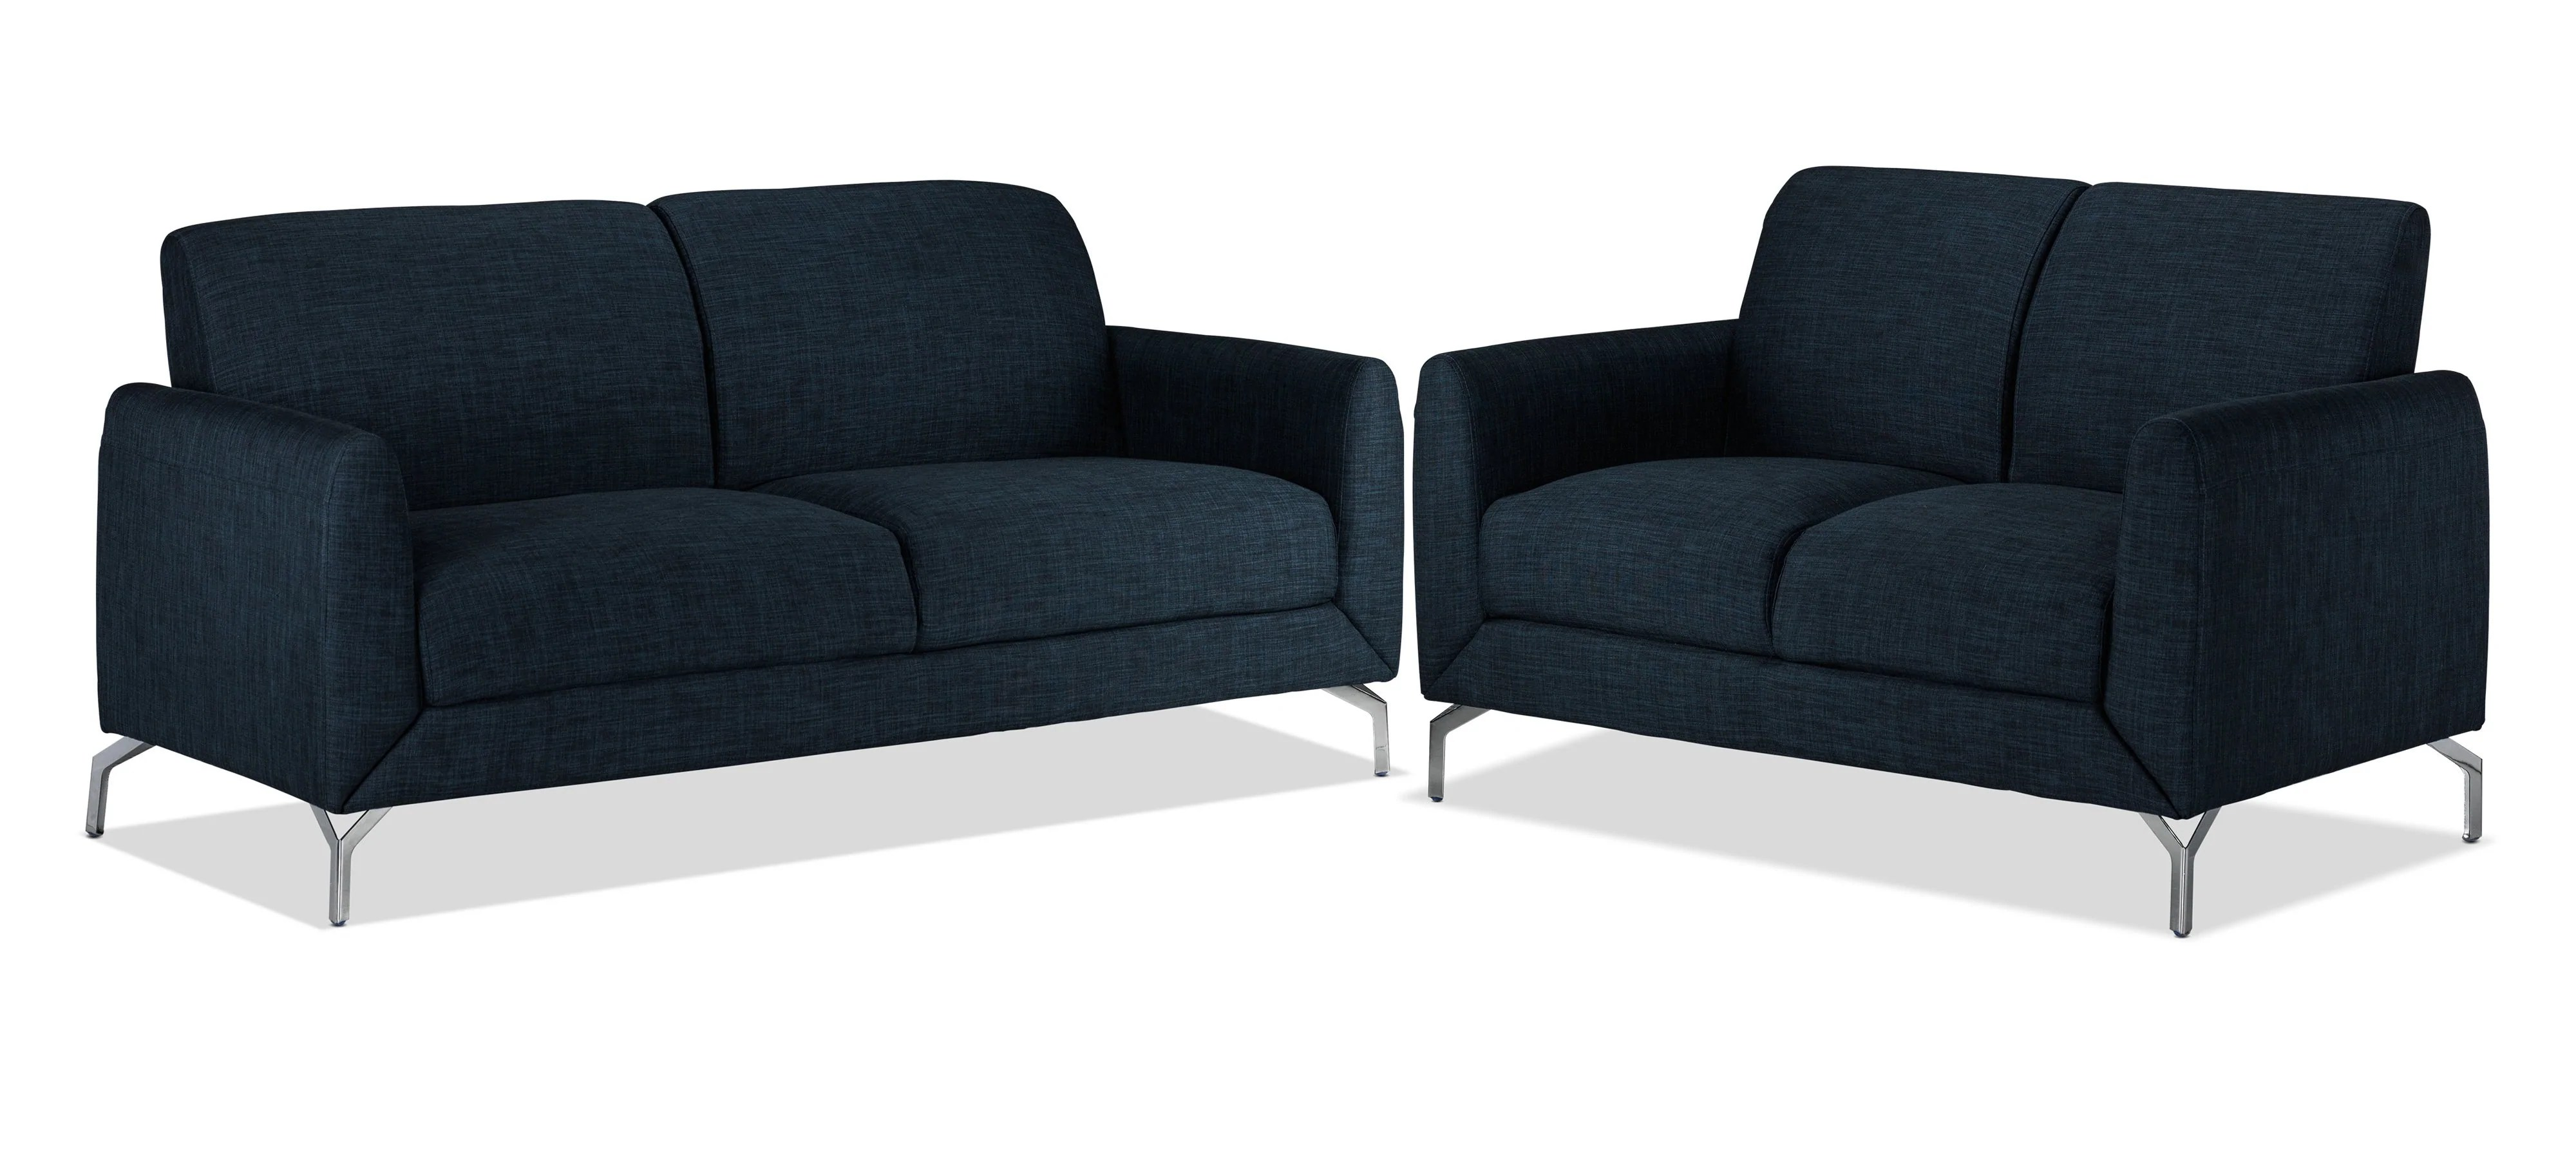 sofas dark blue narrow sofa tables ryan and loveseat set leon s recently viewed items